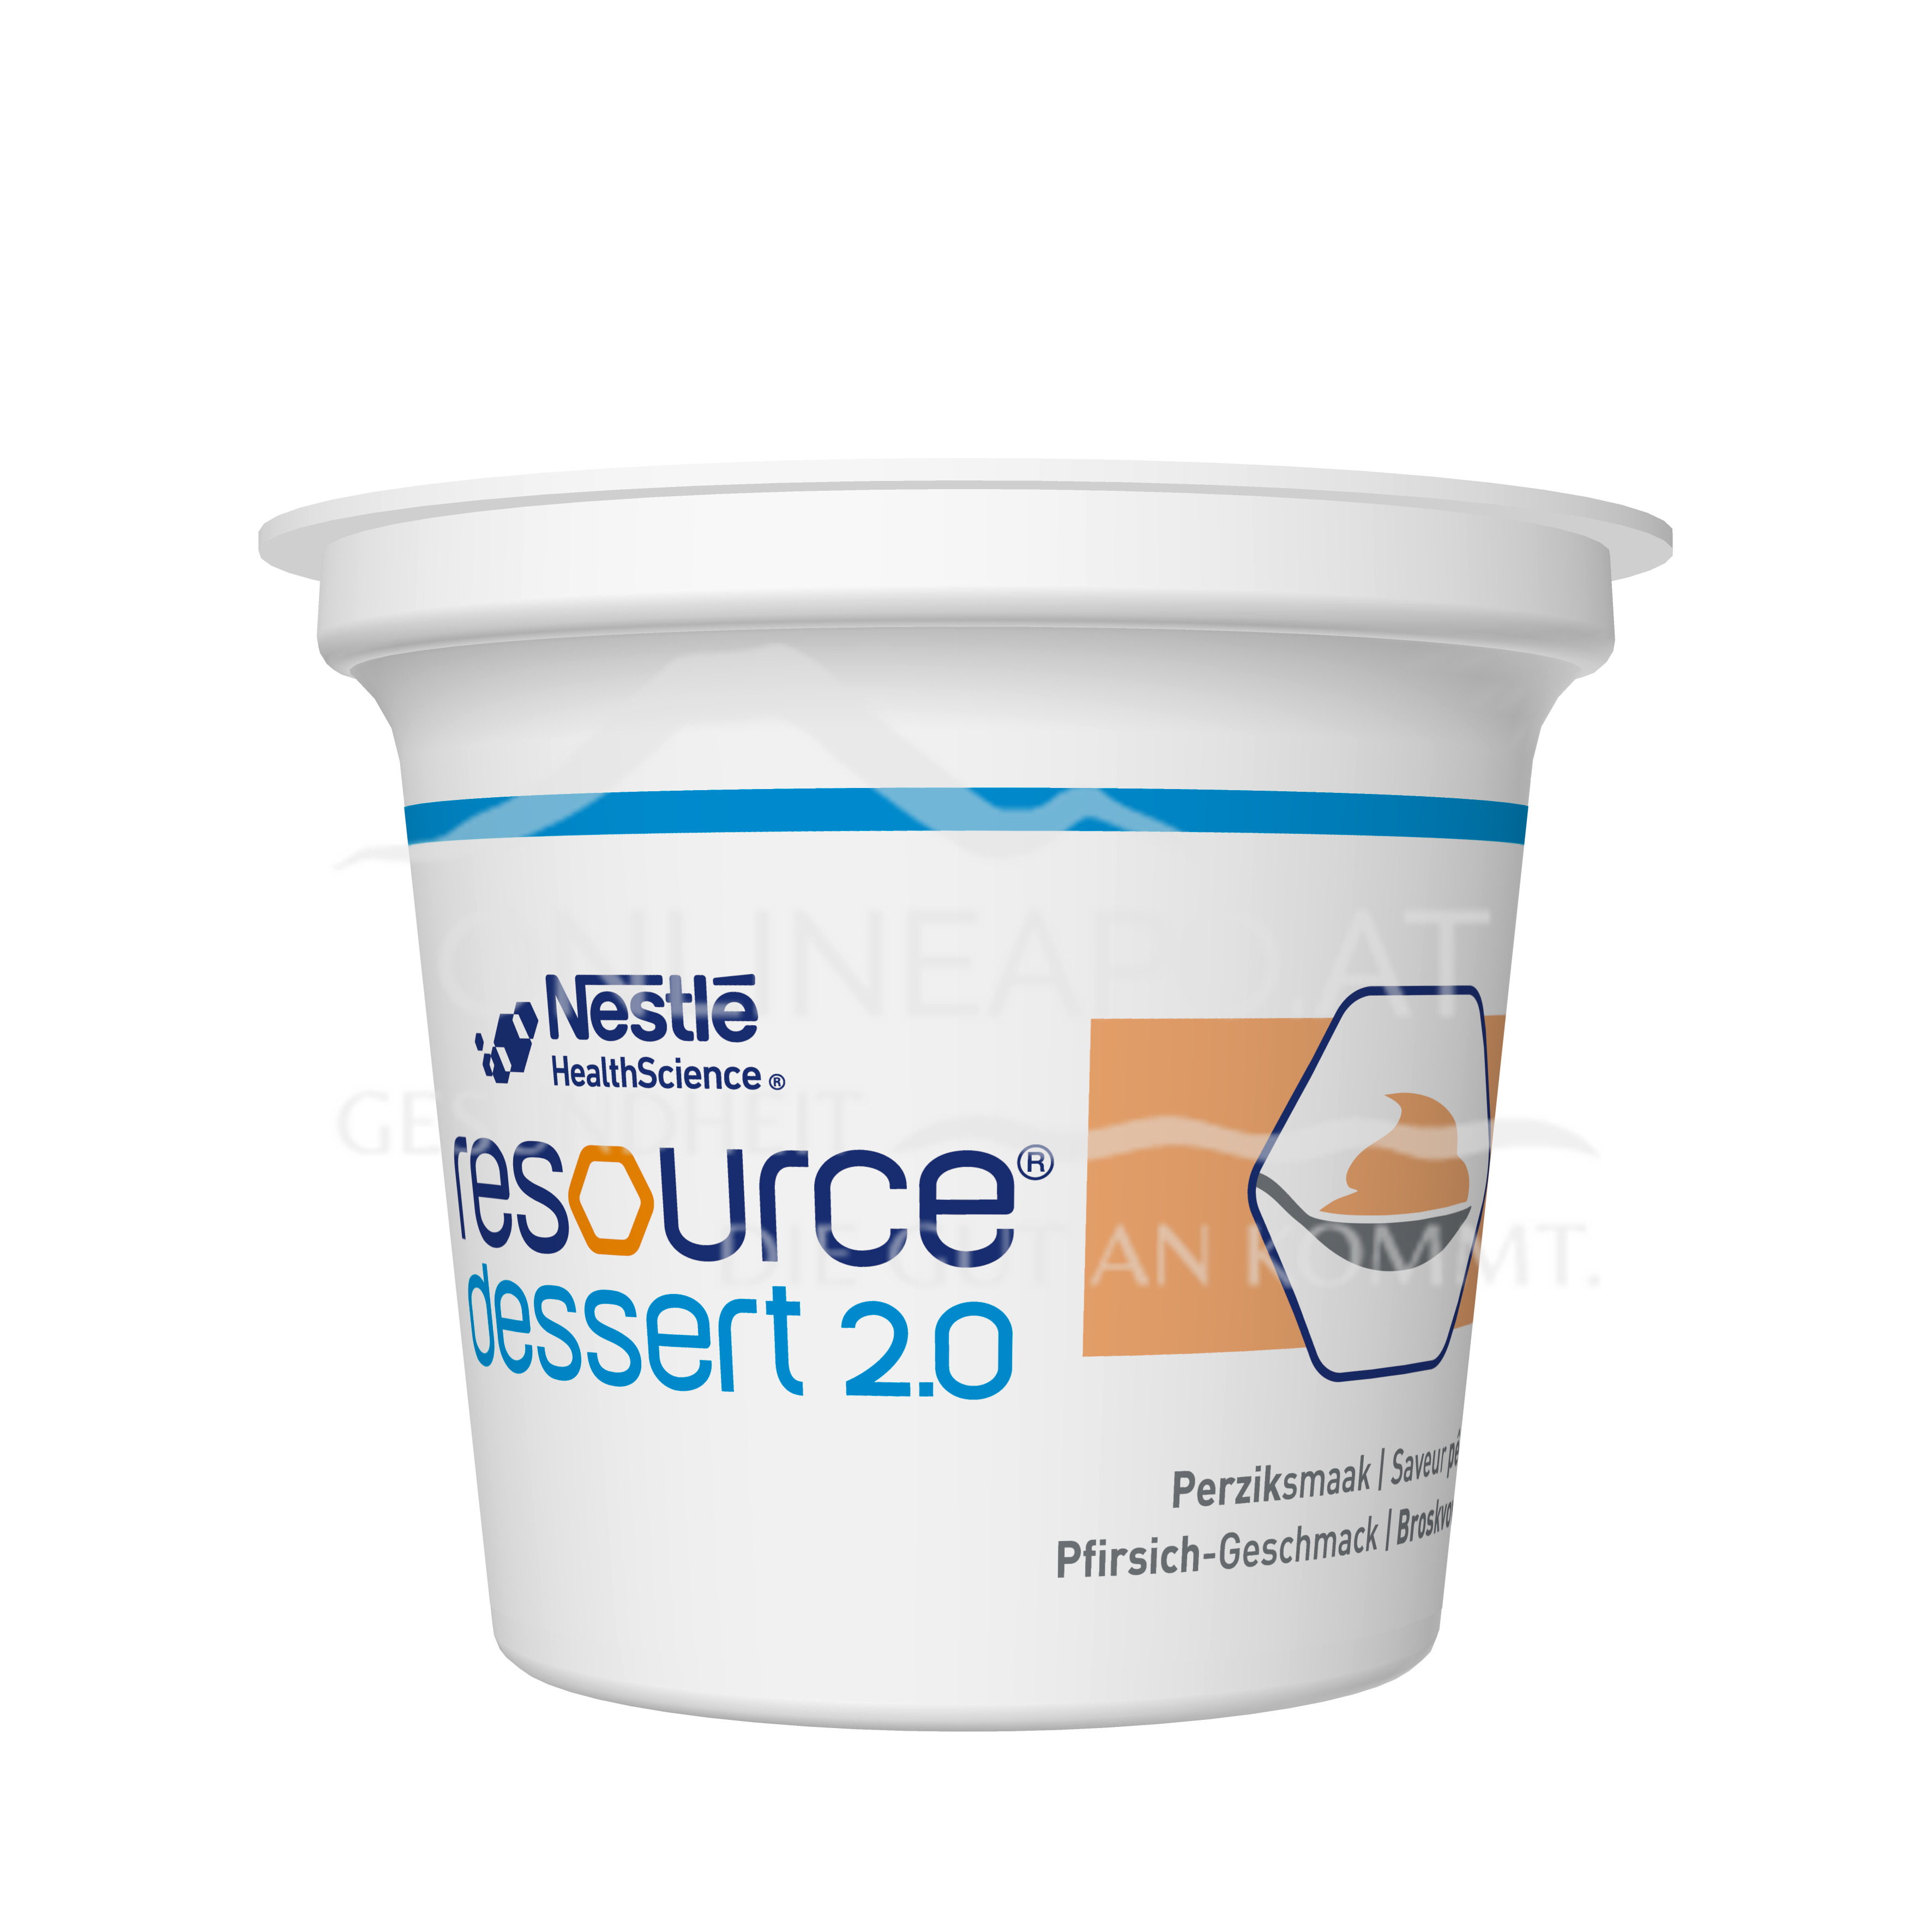 Resource® Dessert 2.0 Pfirsich 4x125g